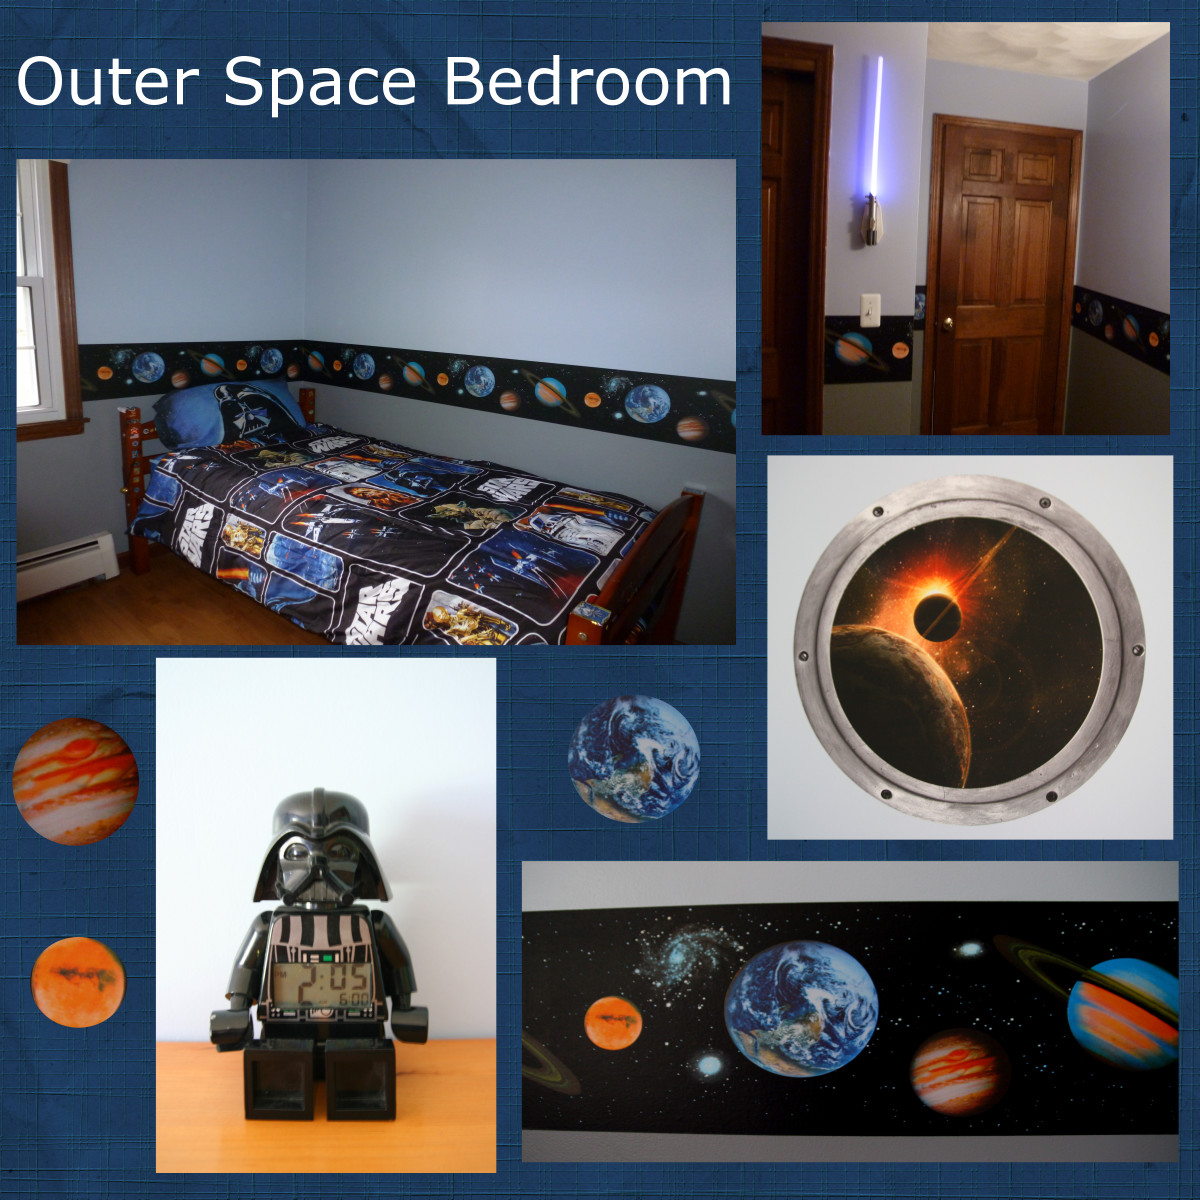 Outer space bedroom decorating ideas - Outer space bedroom decor ...